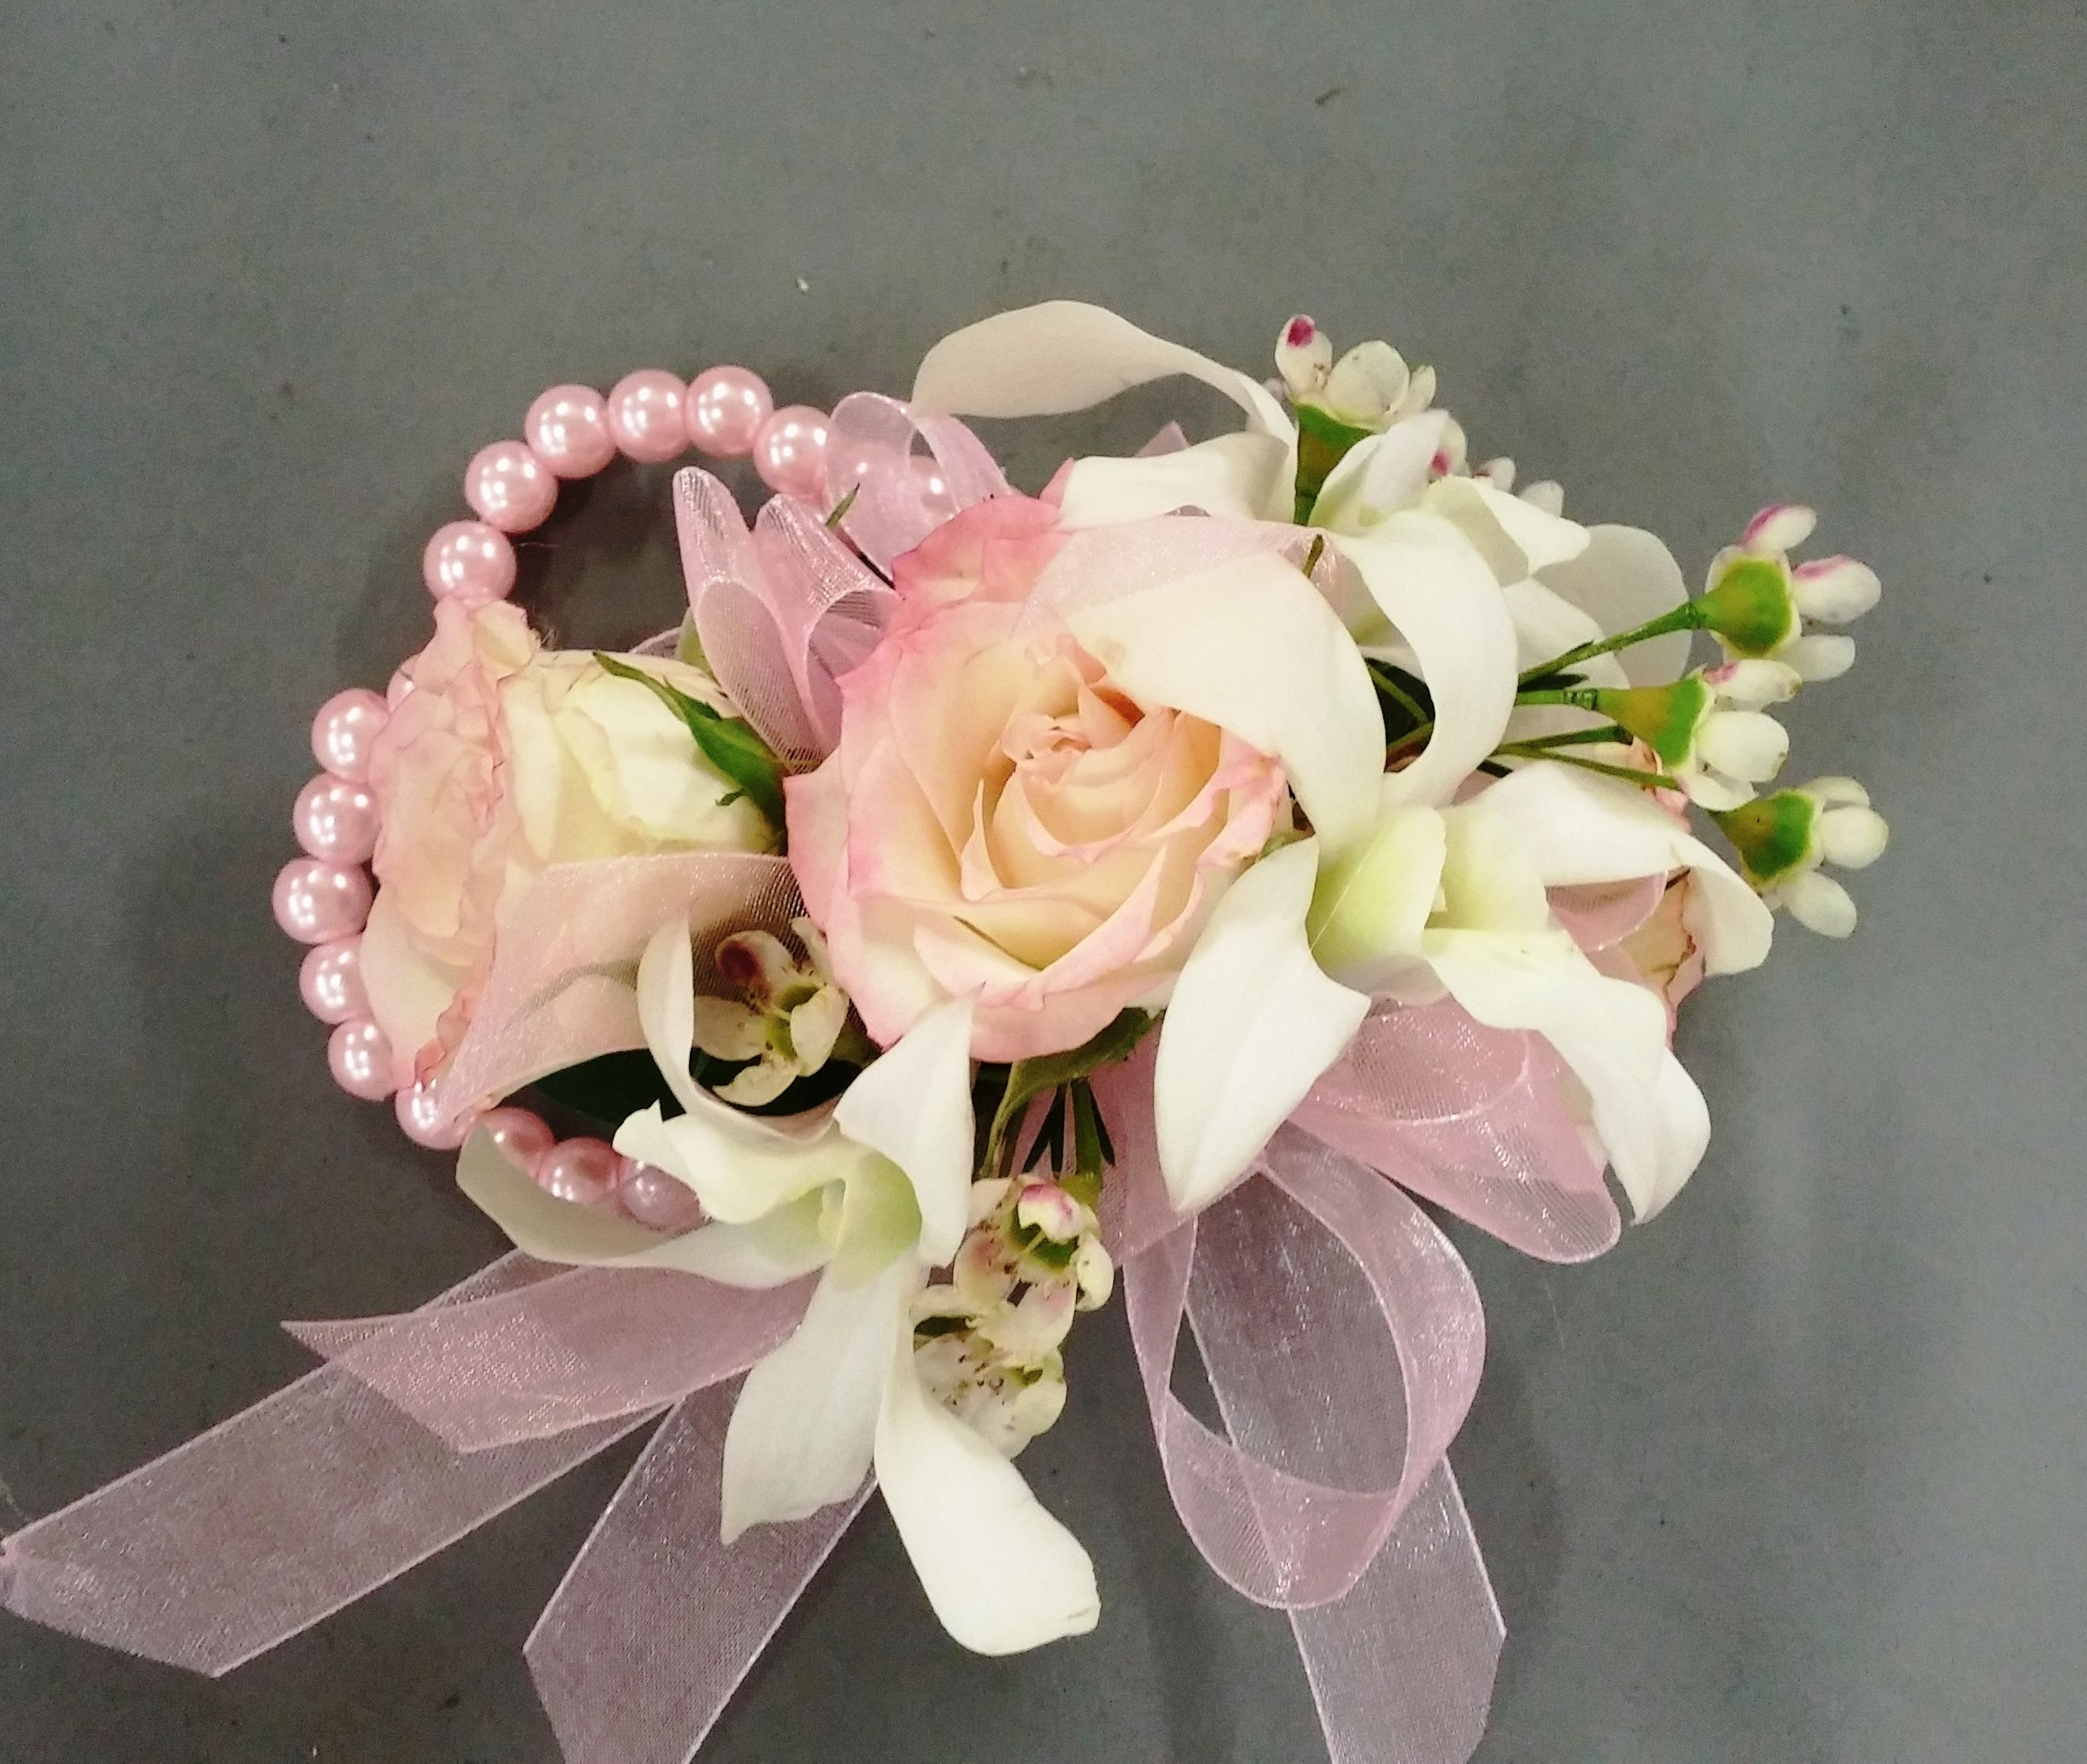 Wrist Corsage With White Orchids And Blush Spray Roses On Light Pink